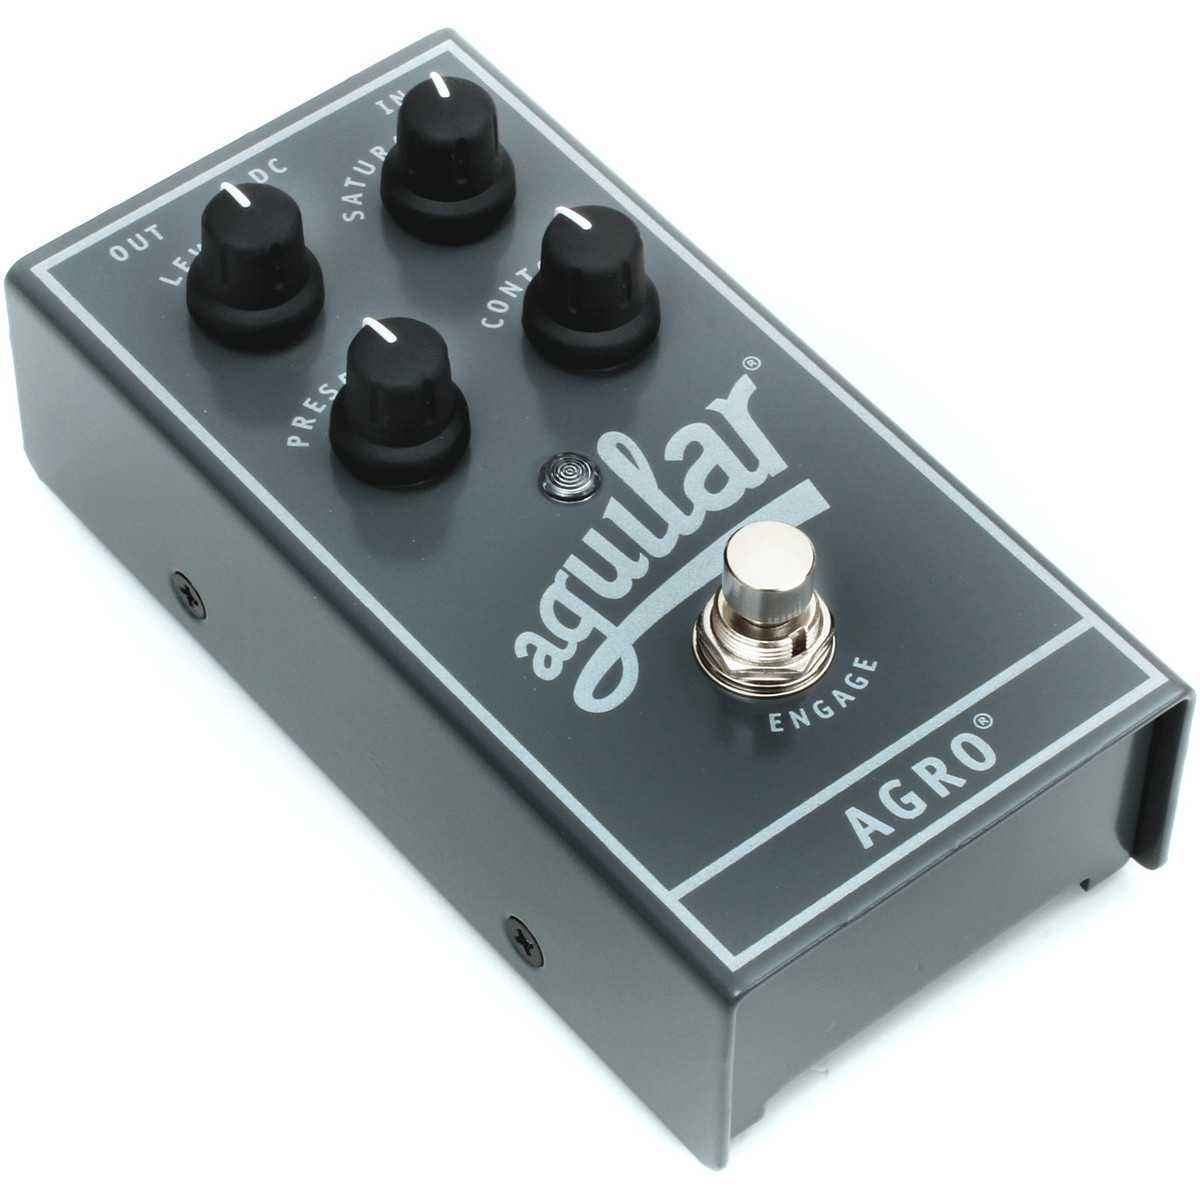 Aguilar AGRO Bass Overdrive Pedal at Gear4music.com